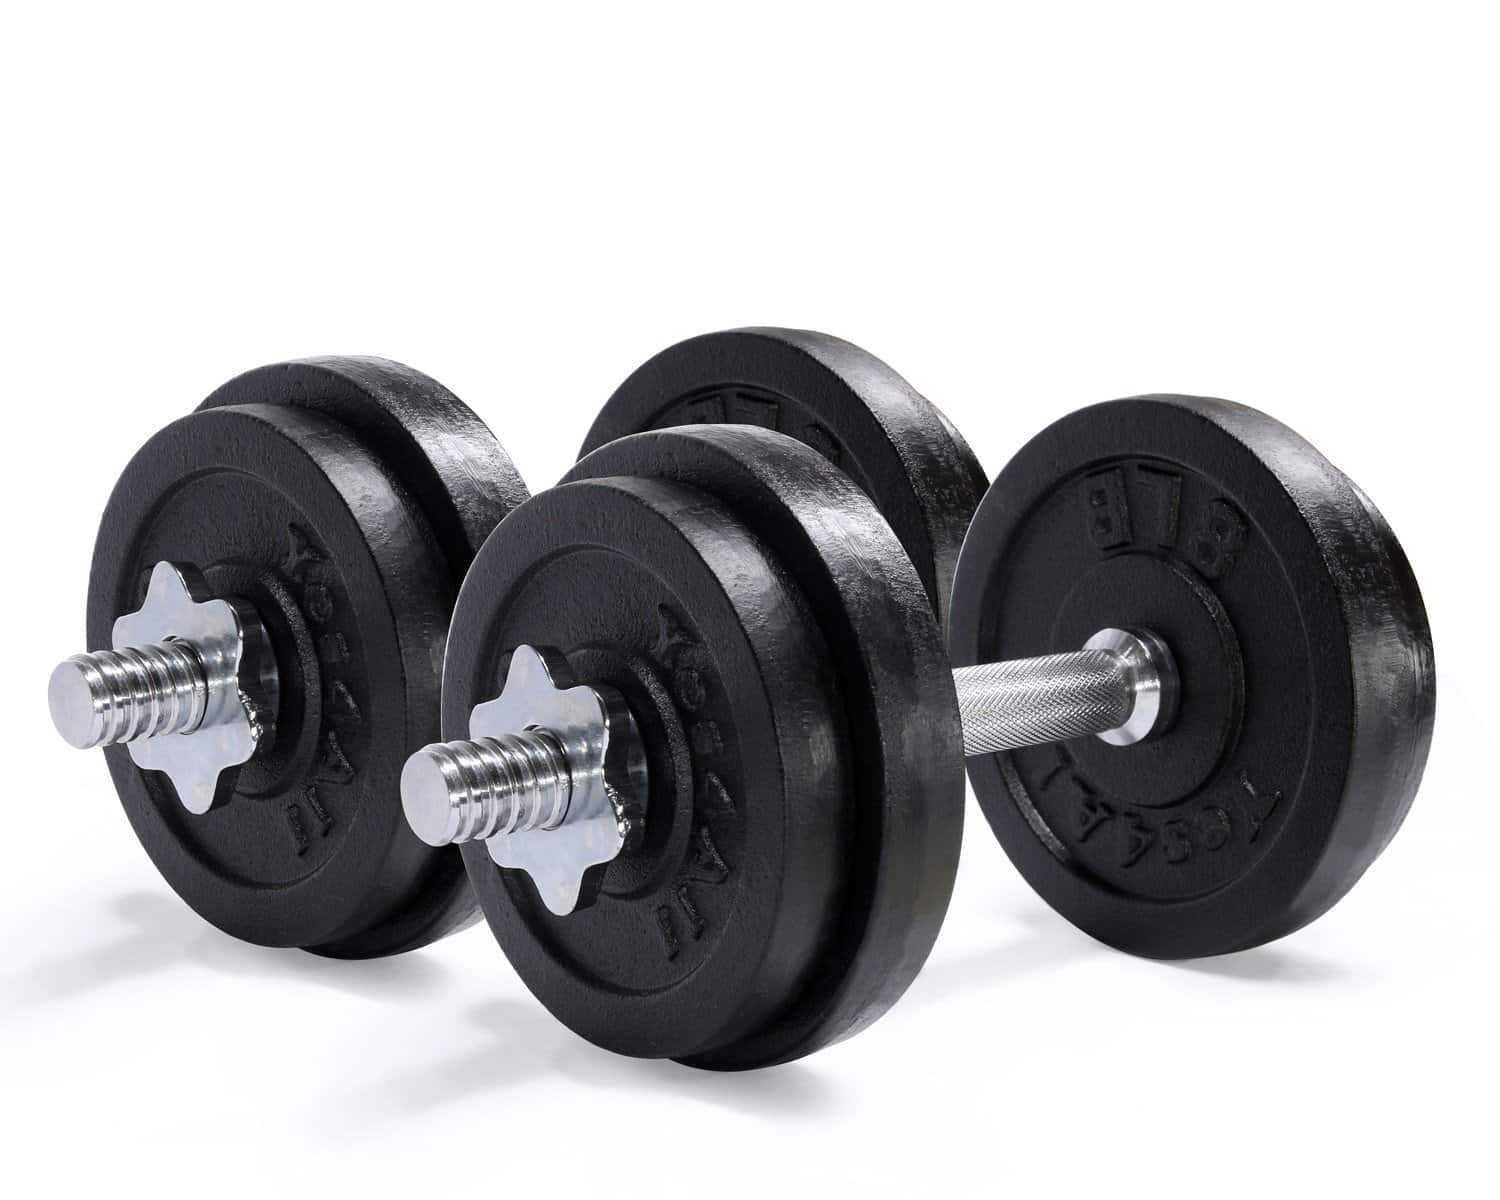 best adjustable dumbbells reddit